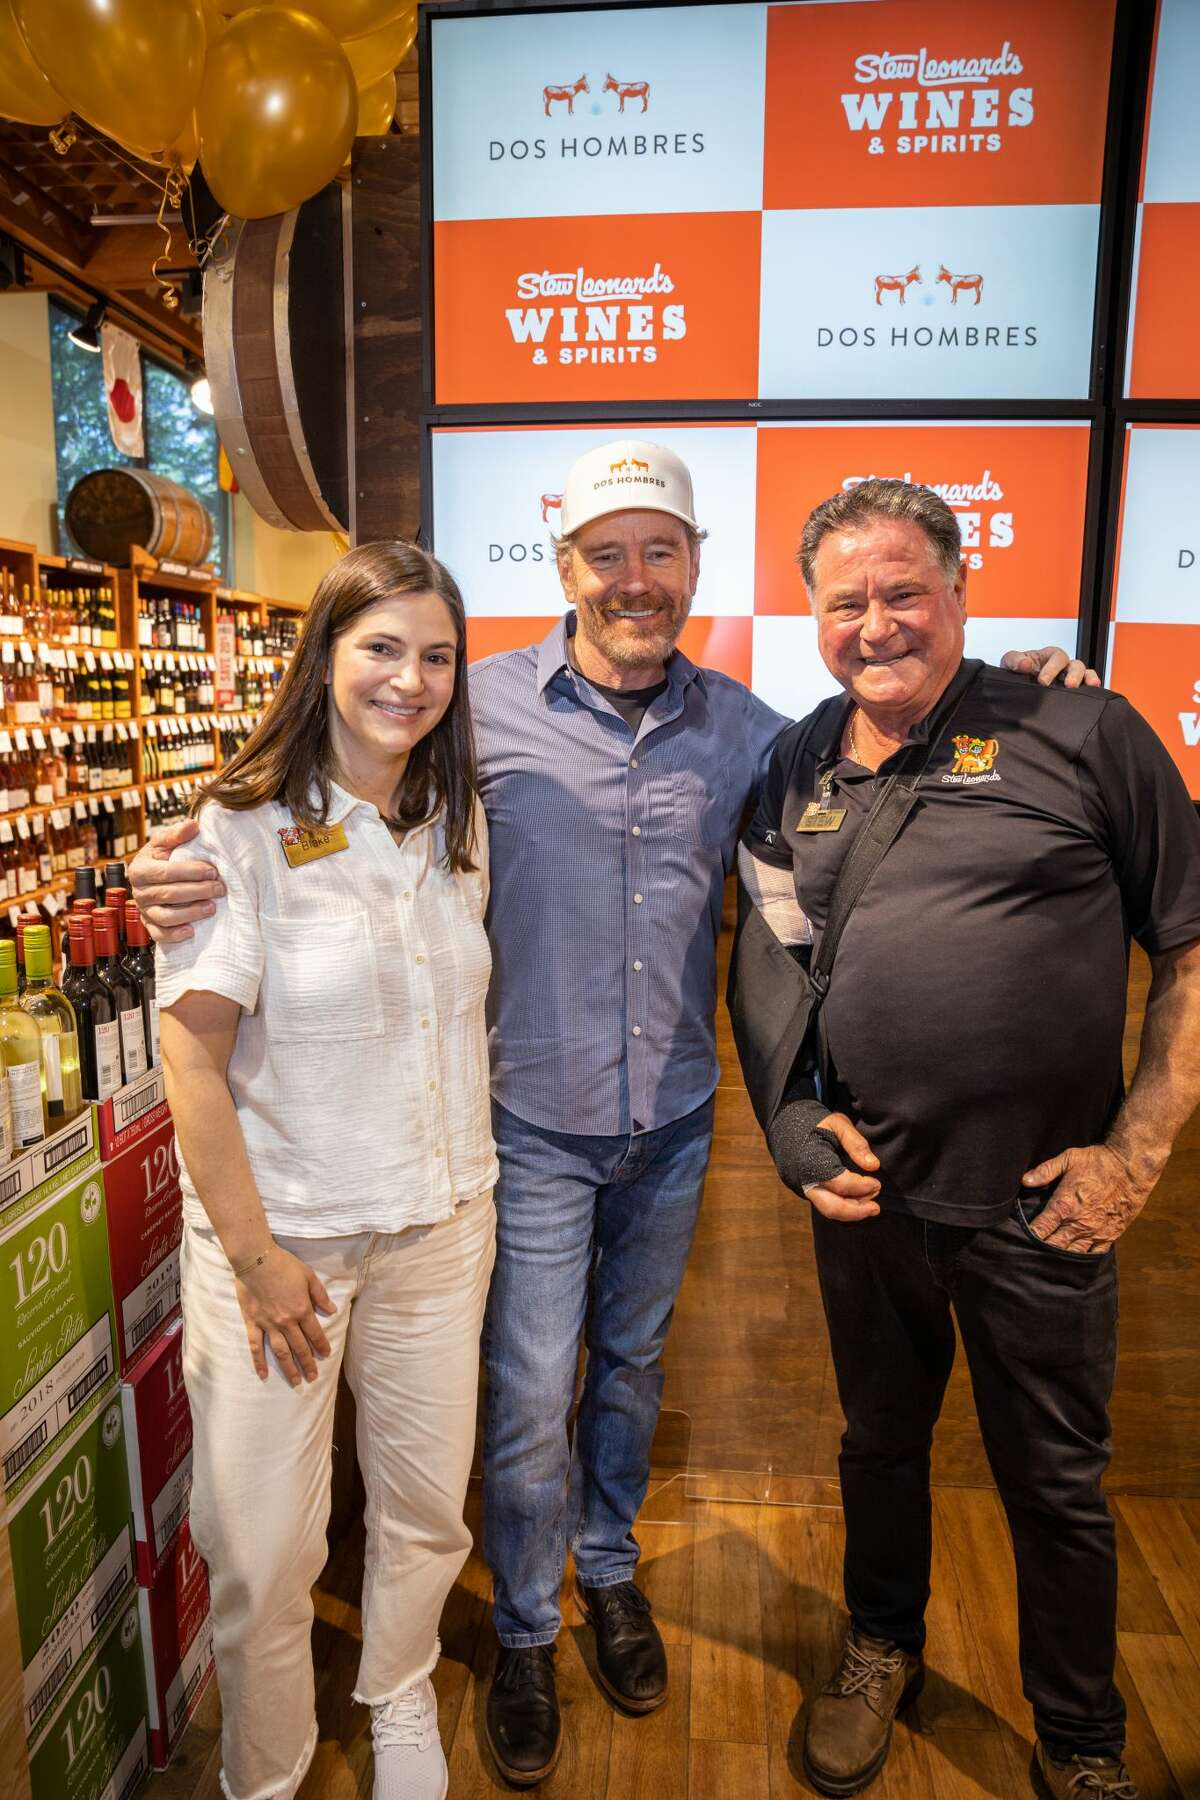 Actor Bryan Cranston with Blake Leonard, certified sommelier and VP of Stew Leonard's Wines and Spirits and Stew Leonard Jr., President & CEO of Stew Leonard's at Stew Leonard's in Norwalk on June 7, 2021.